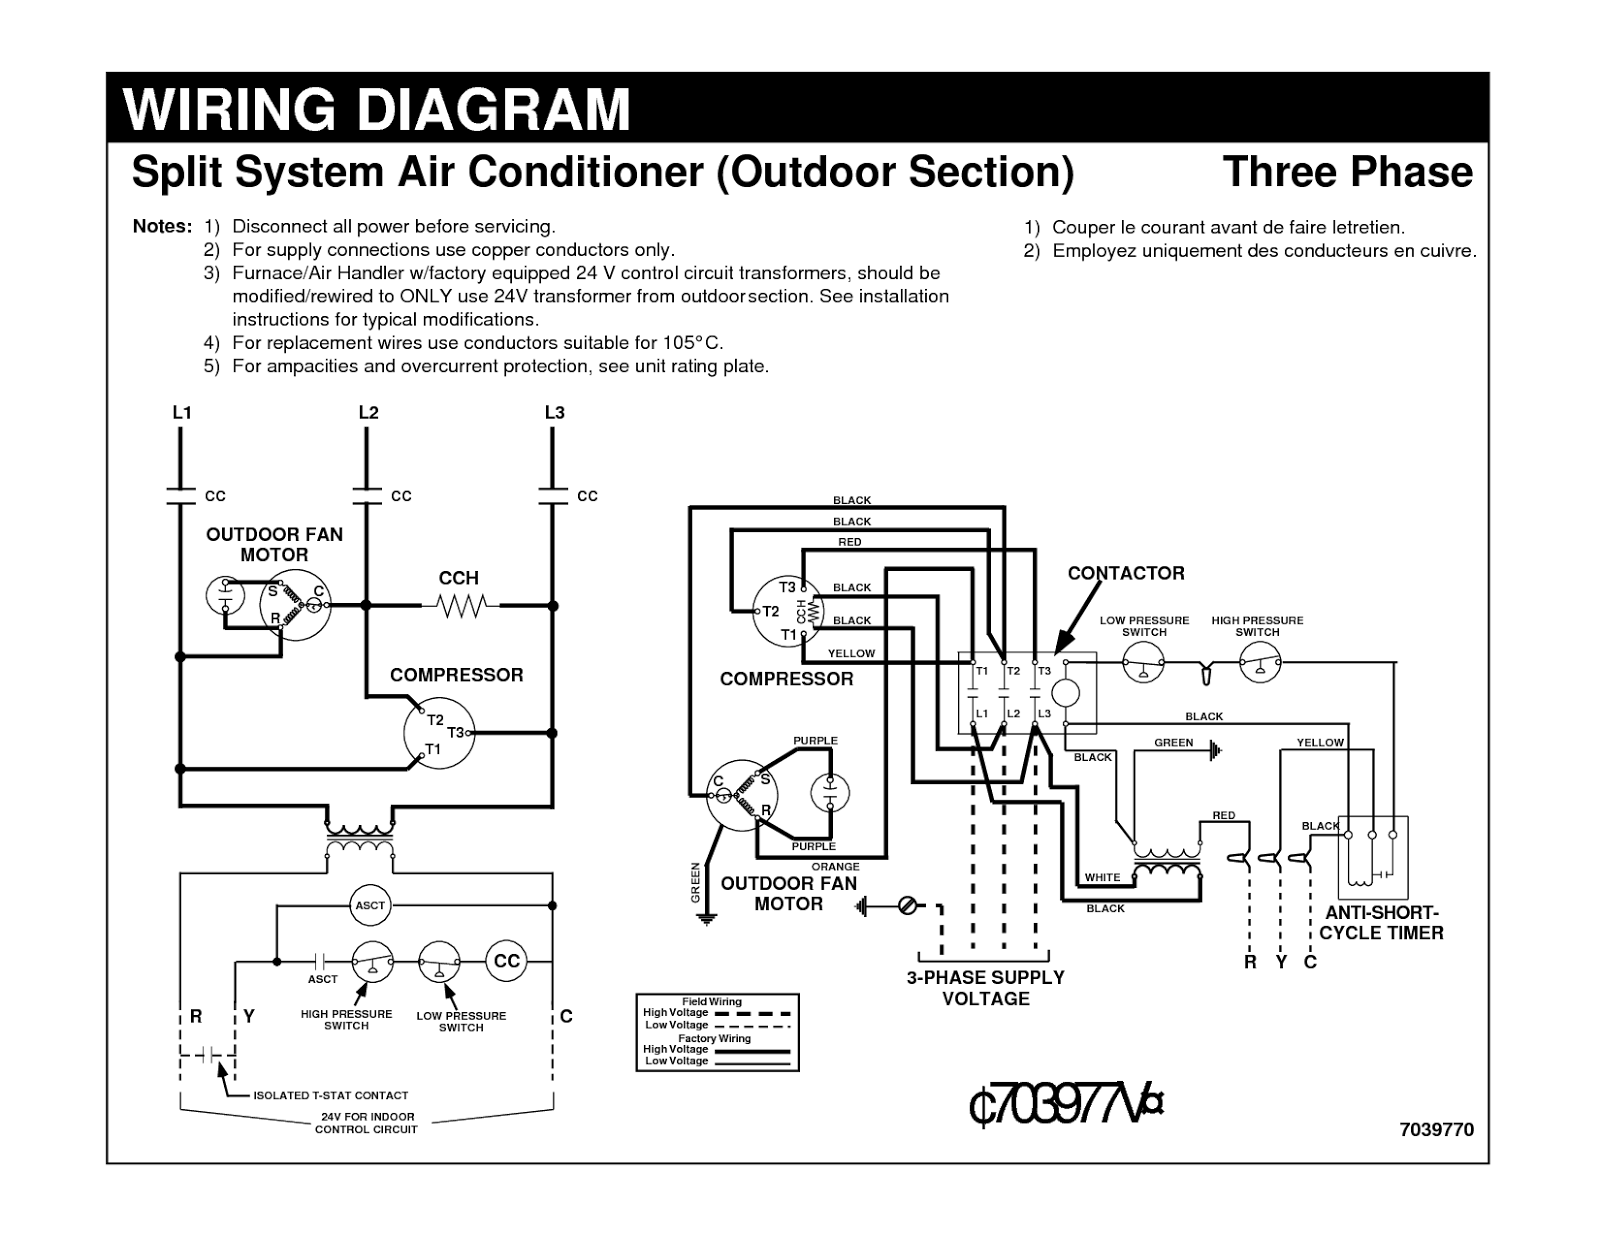 wiring+diagram+in+the+user+manual electrical wiring diagrams for air conditioning systems part one air conditioner wiring diagram at bakdesigns.co